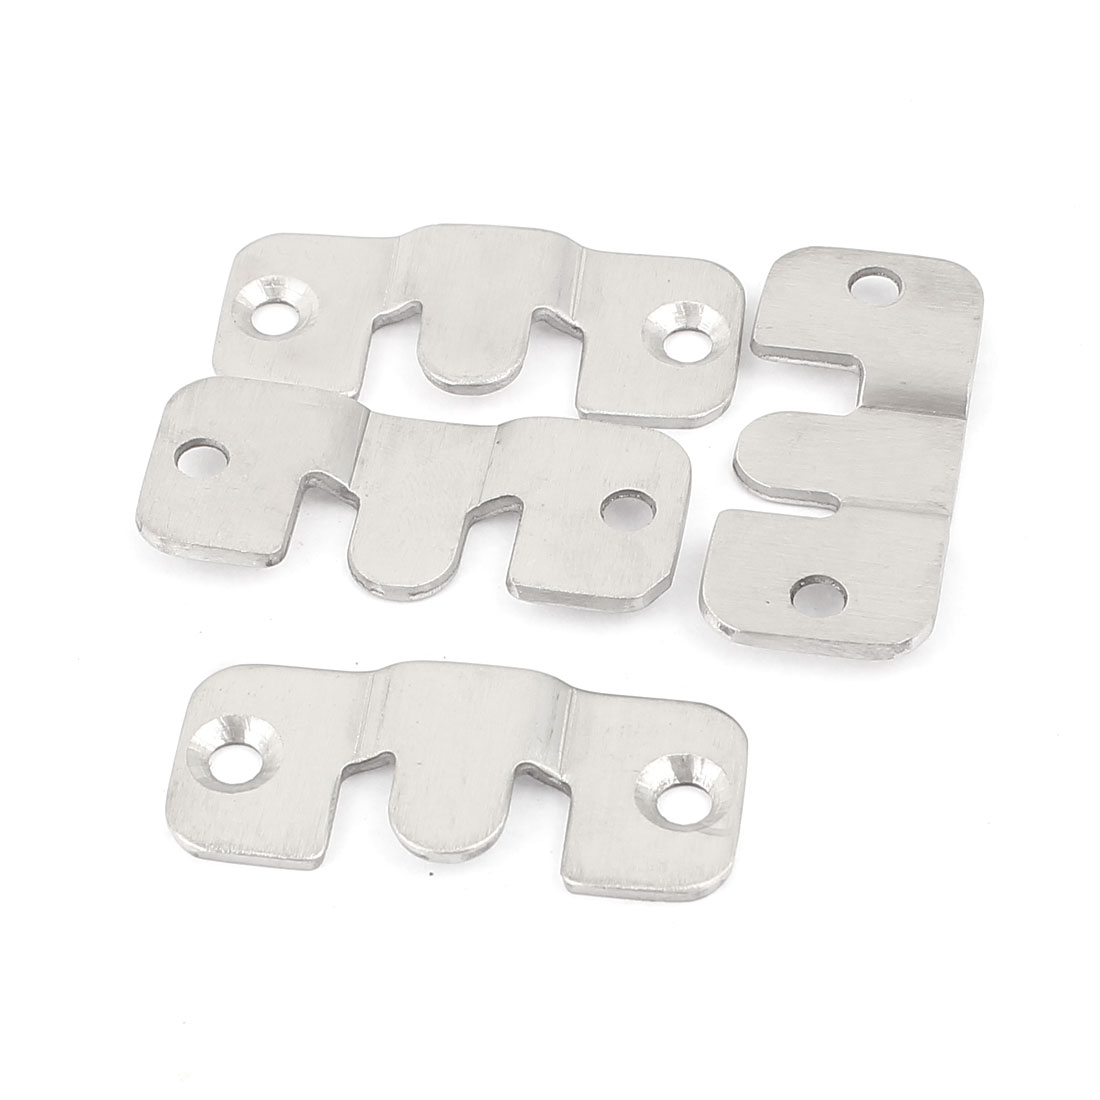 UXCELL Universal Sectional Interlock Sofa Couch Connector Bracket Set 4Pcs(China (Mainland))